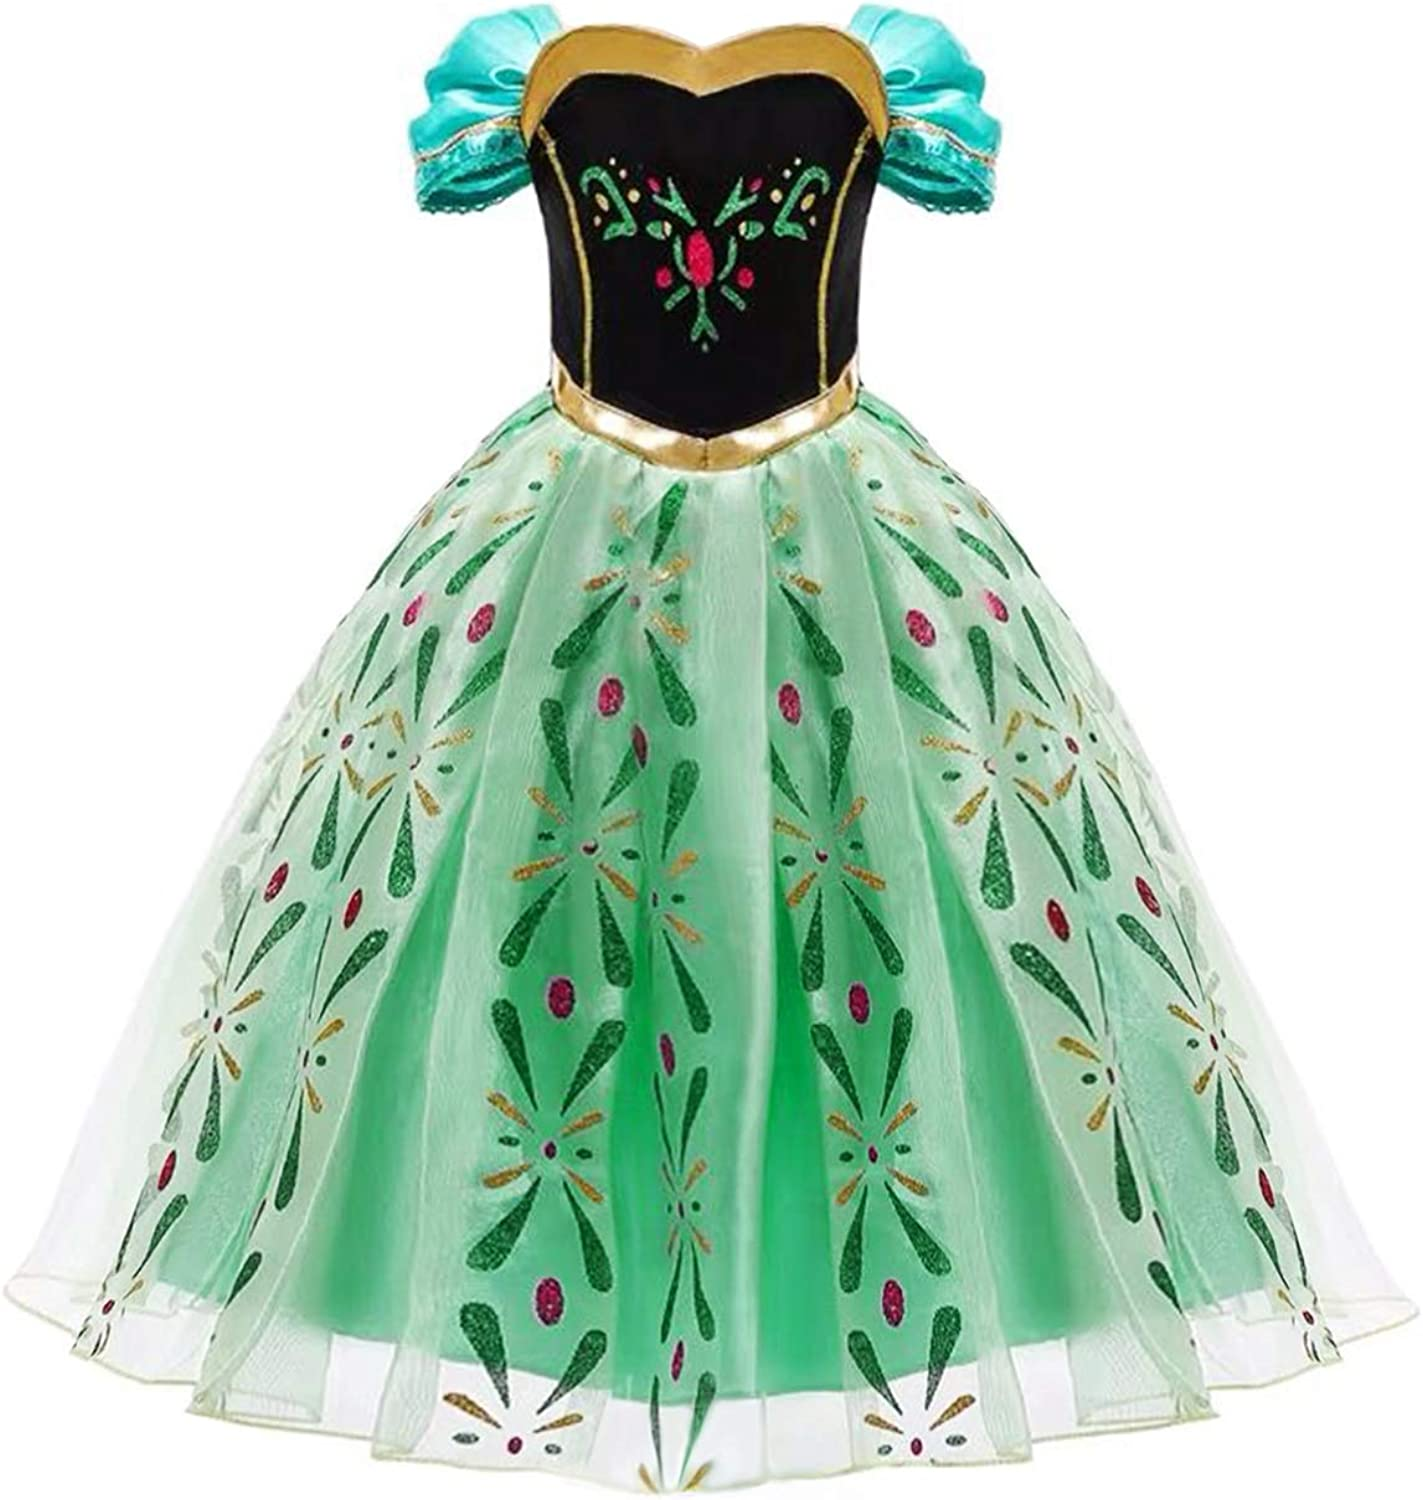 FROZEN 2 FANCY DRESS ANNA AGES 3-4 COSPLAY COSTUME PRINCESS